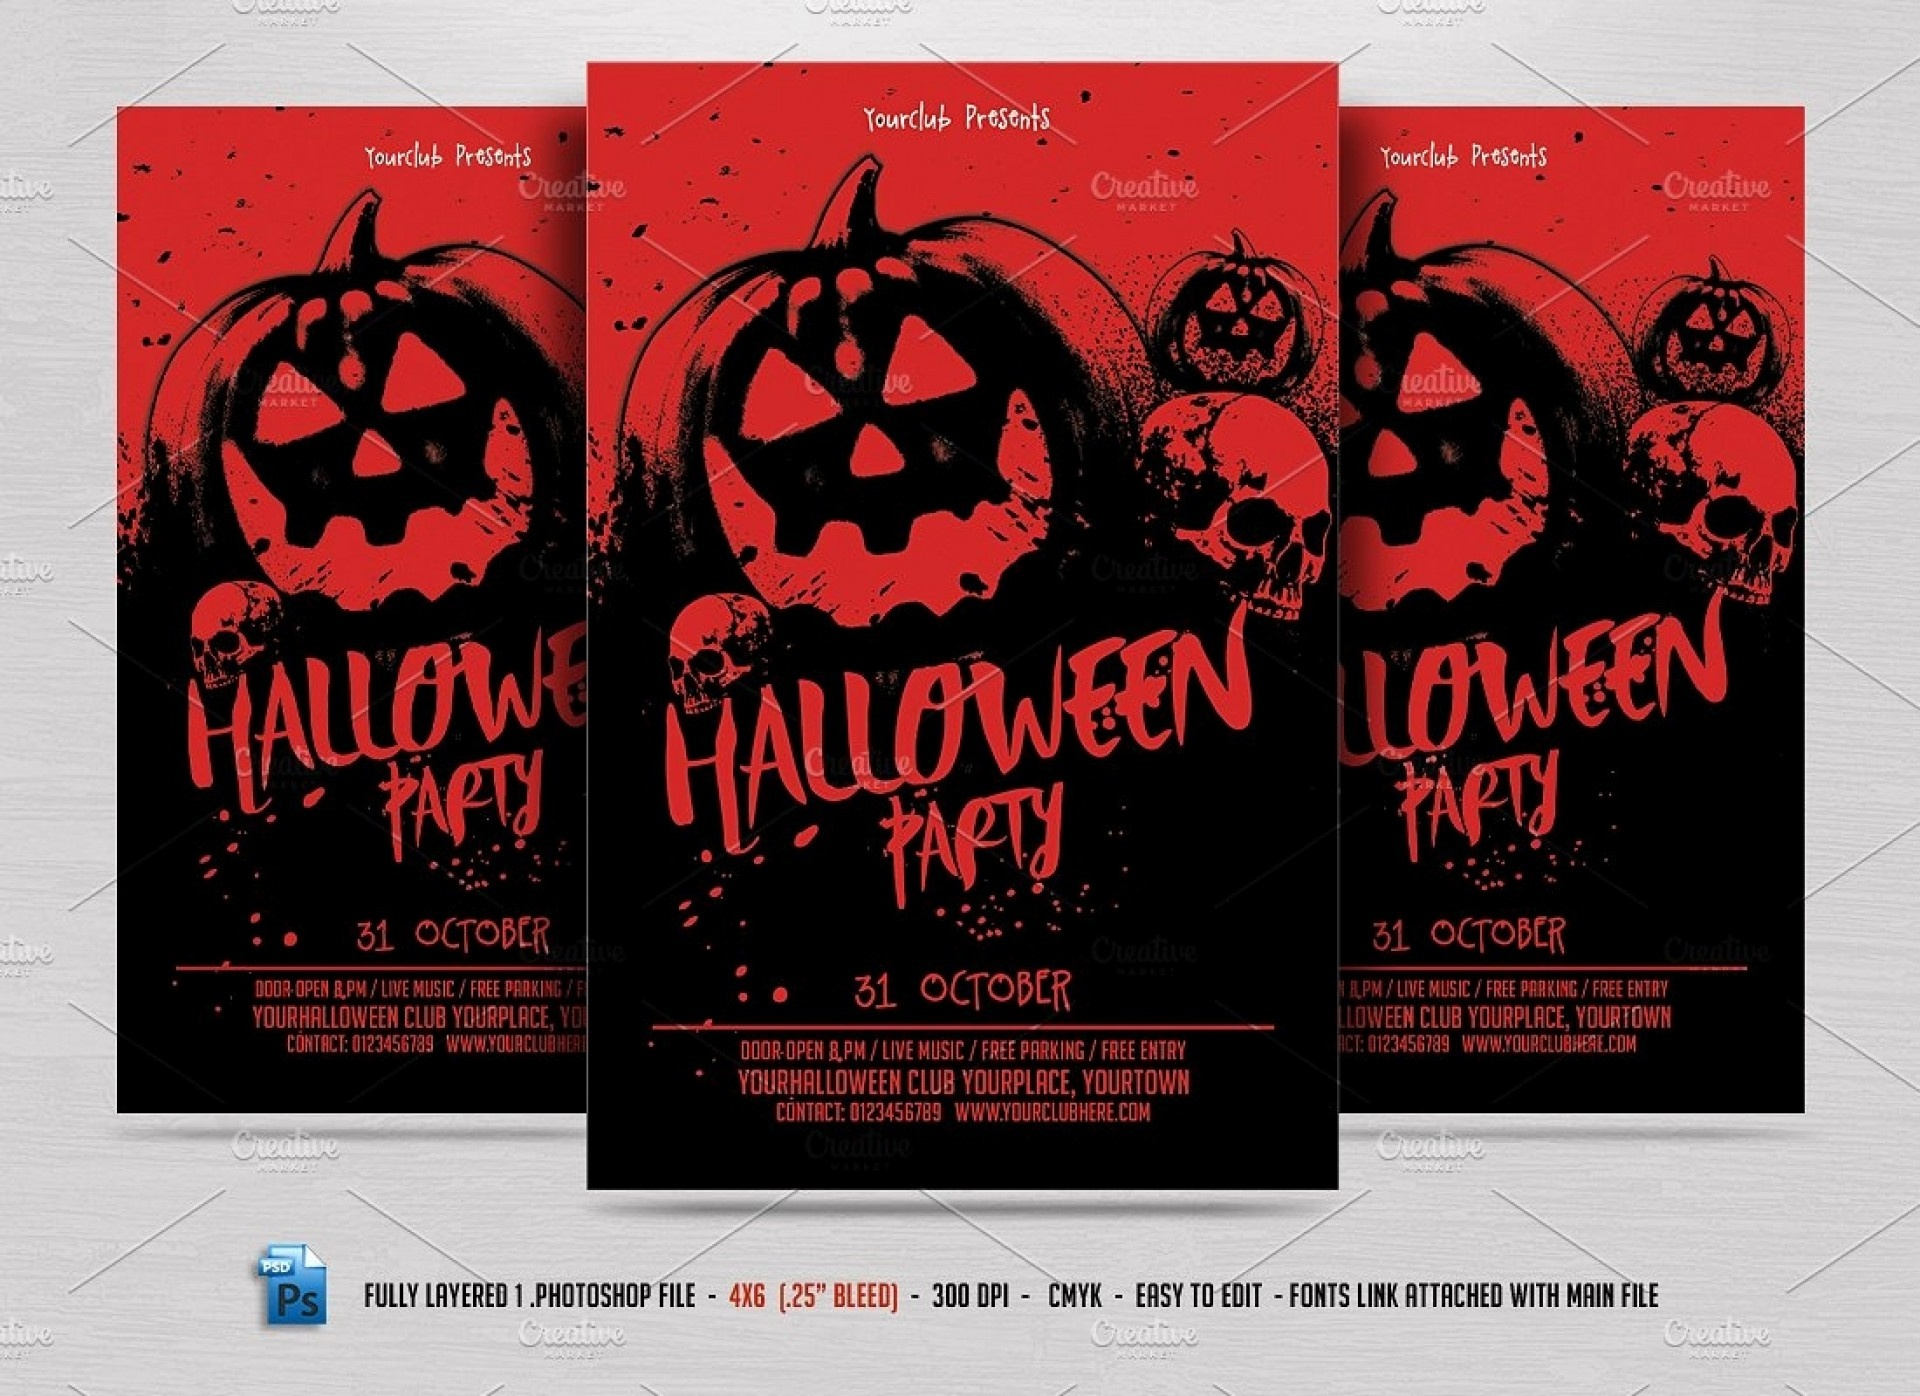 004 Template Ideas Free Halloween Flyers Wondrous Templates Editable - Free Printable Halloween Flyer Templates